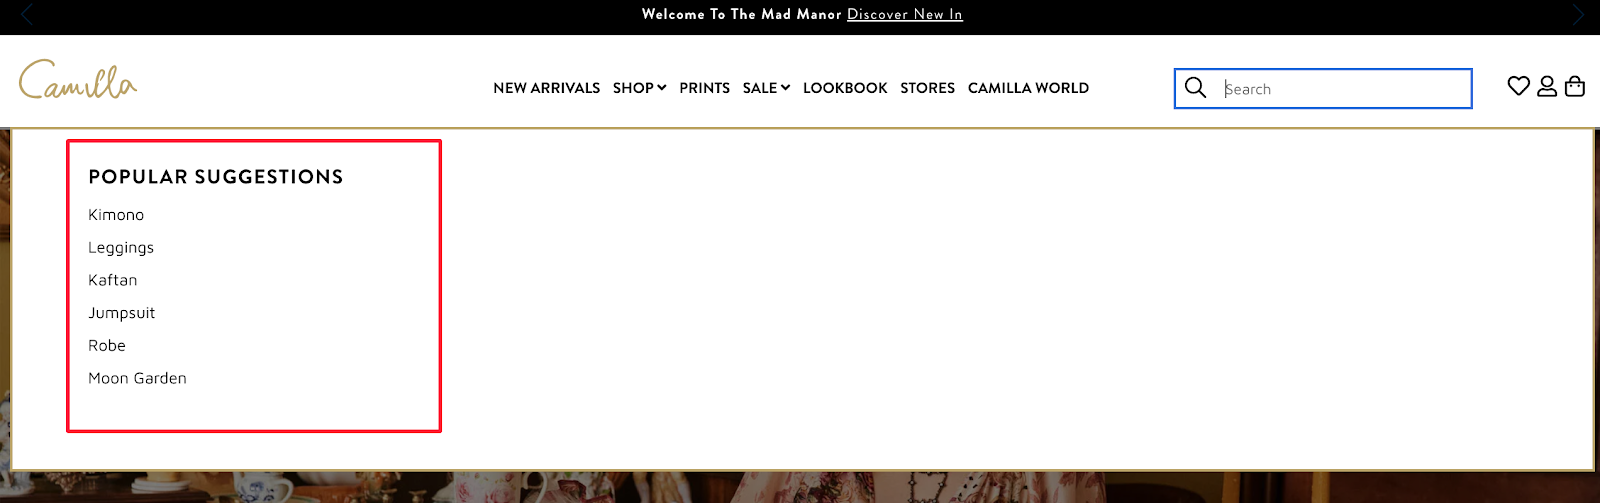 site search online merchandising example